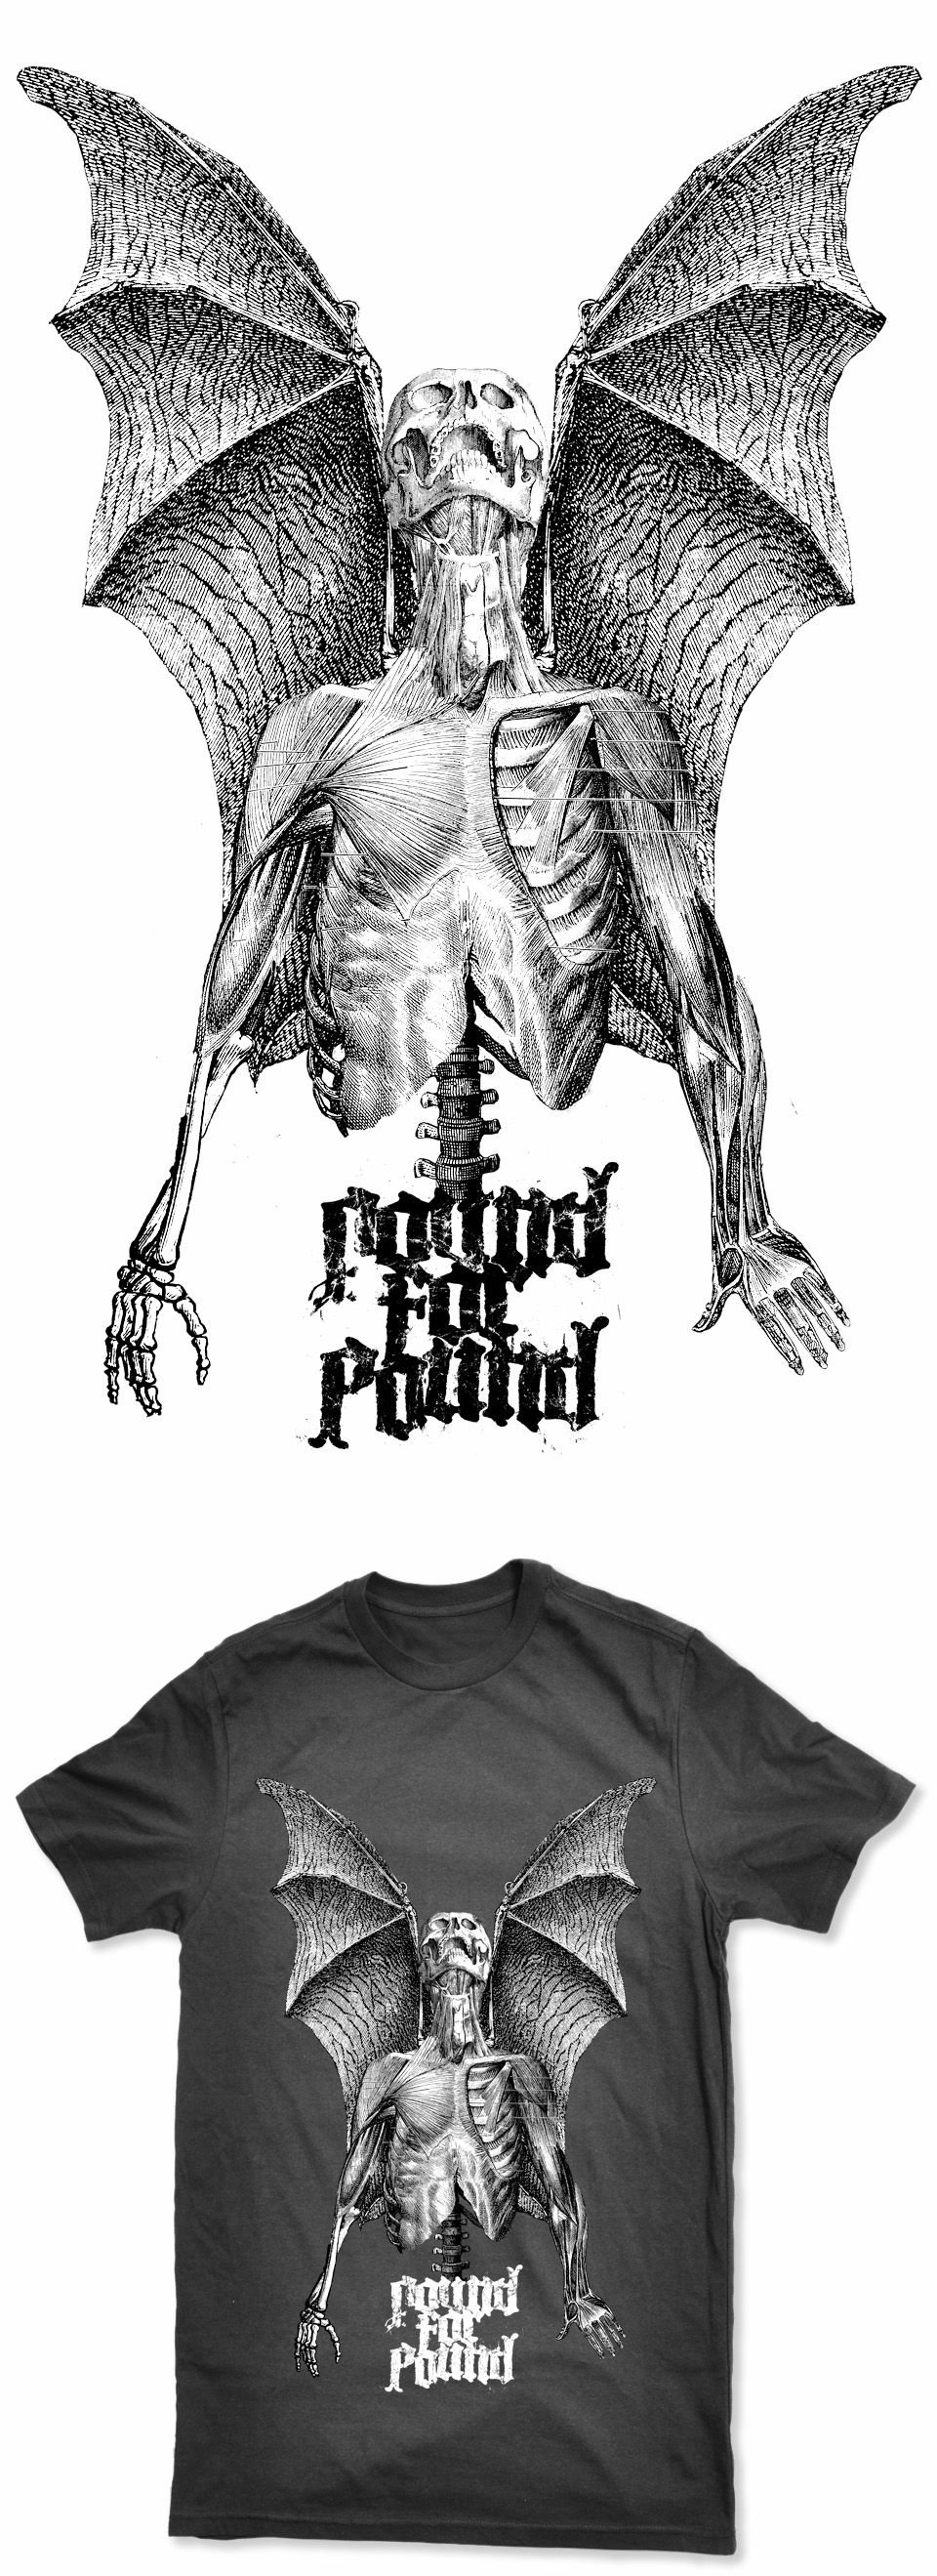 Pound For Pound Shirt Design Detail